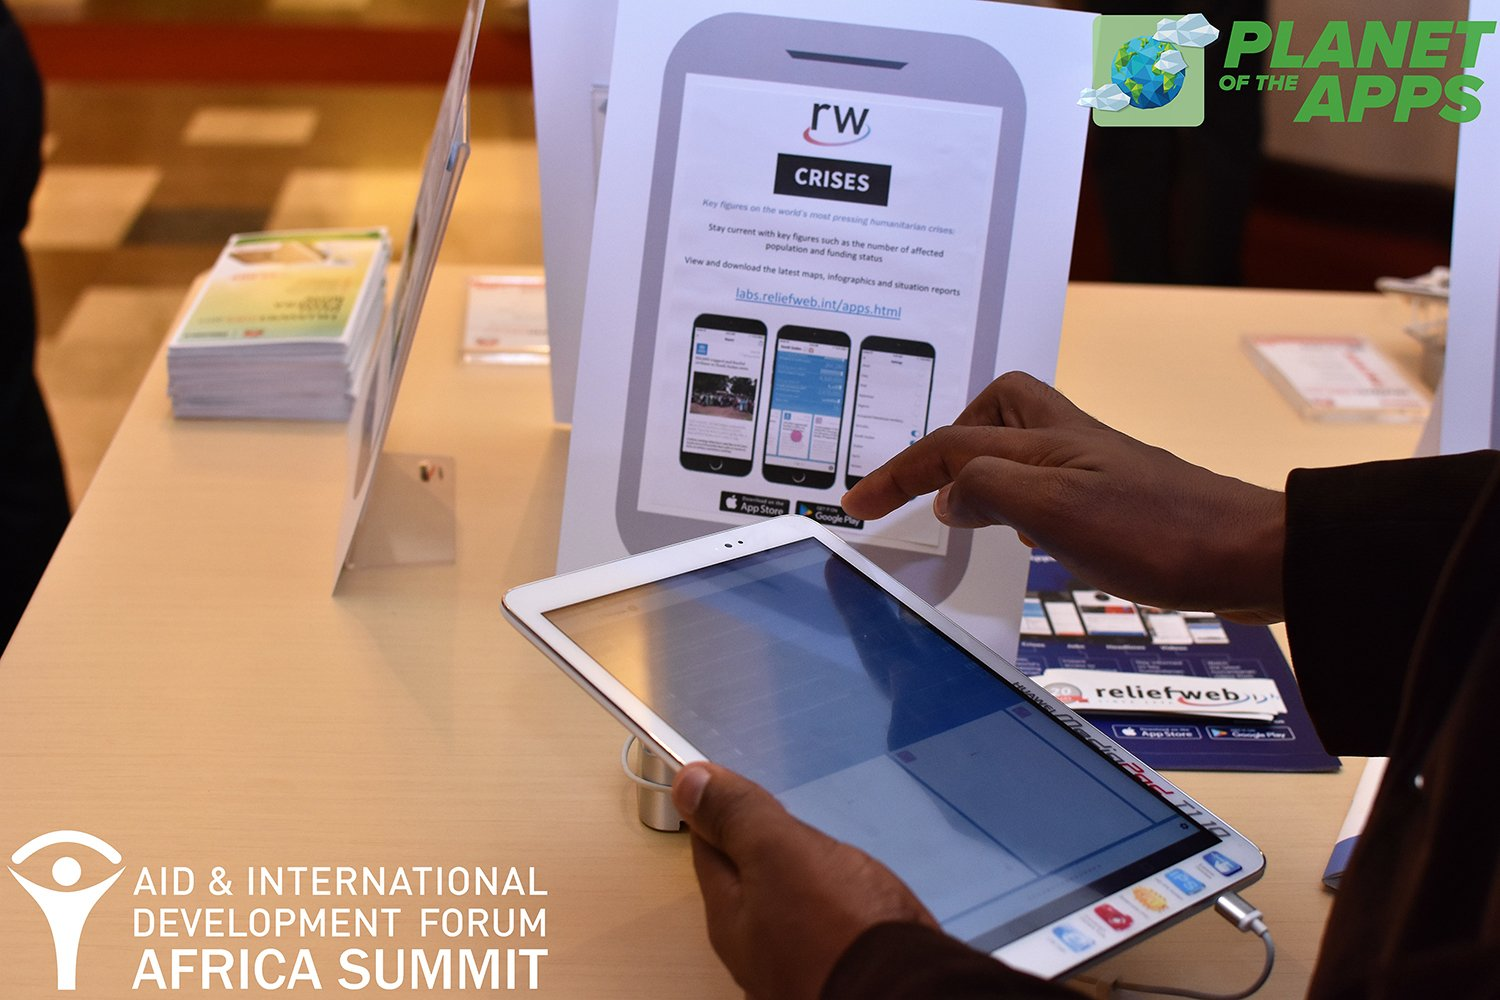 #PlanetoftheApps at #AIDFAfrica Summit 2017 featured @reliefweb @RWLabs #Crisis #App https://t.co/ZMMXPb207G #tech4good #innovation #mobile https://t.co/1mQK1VQ8I1